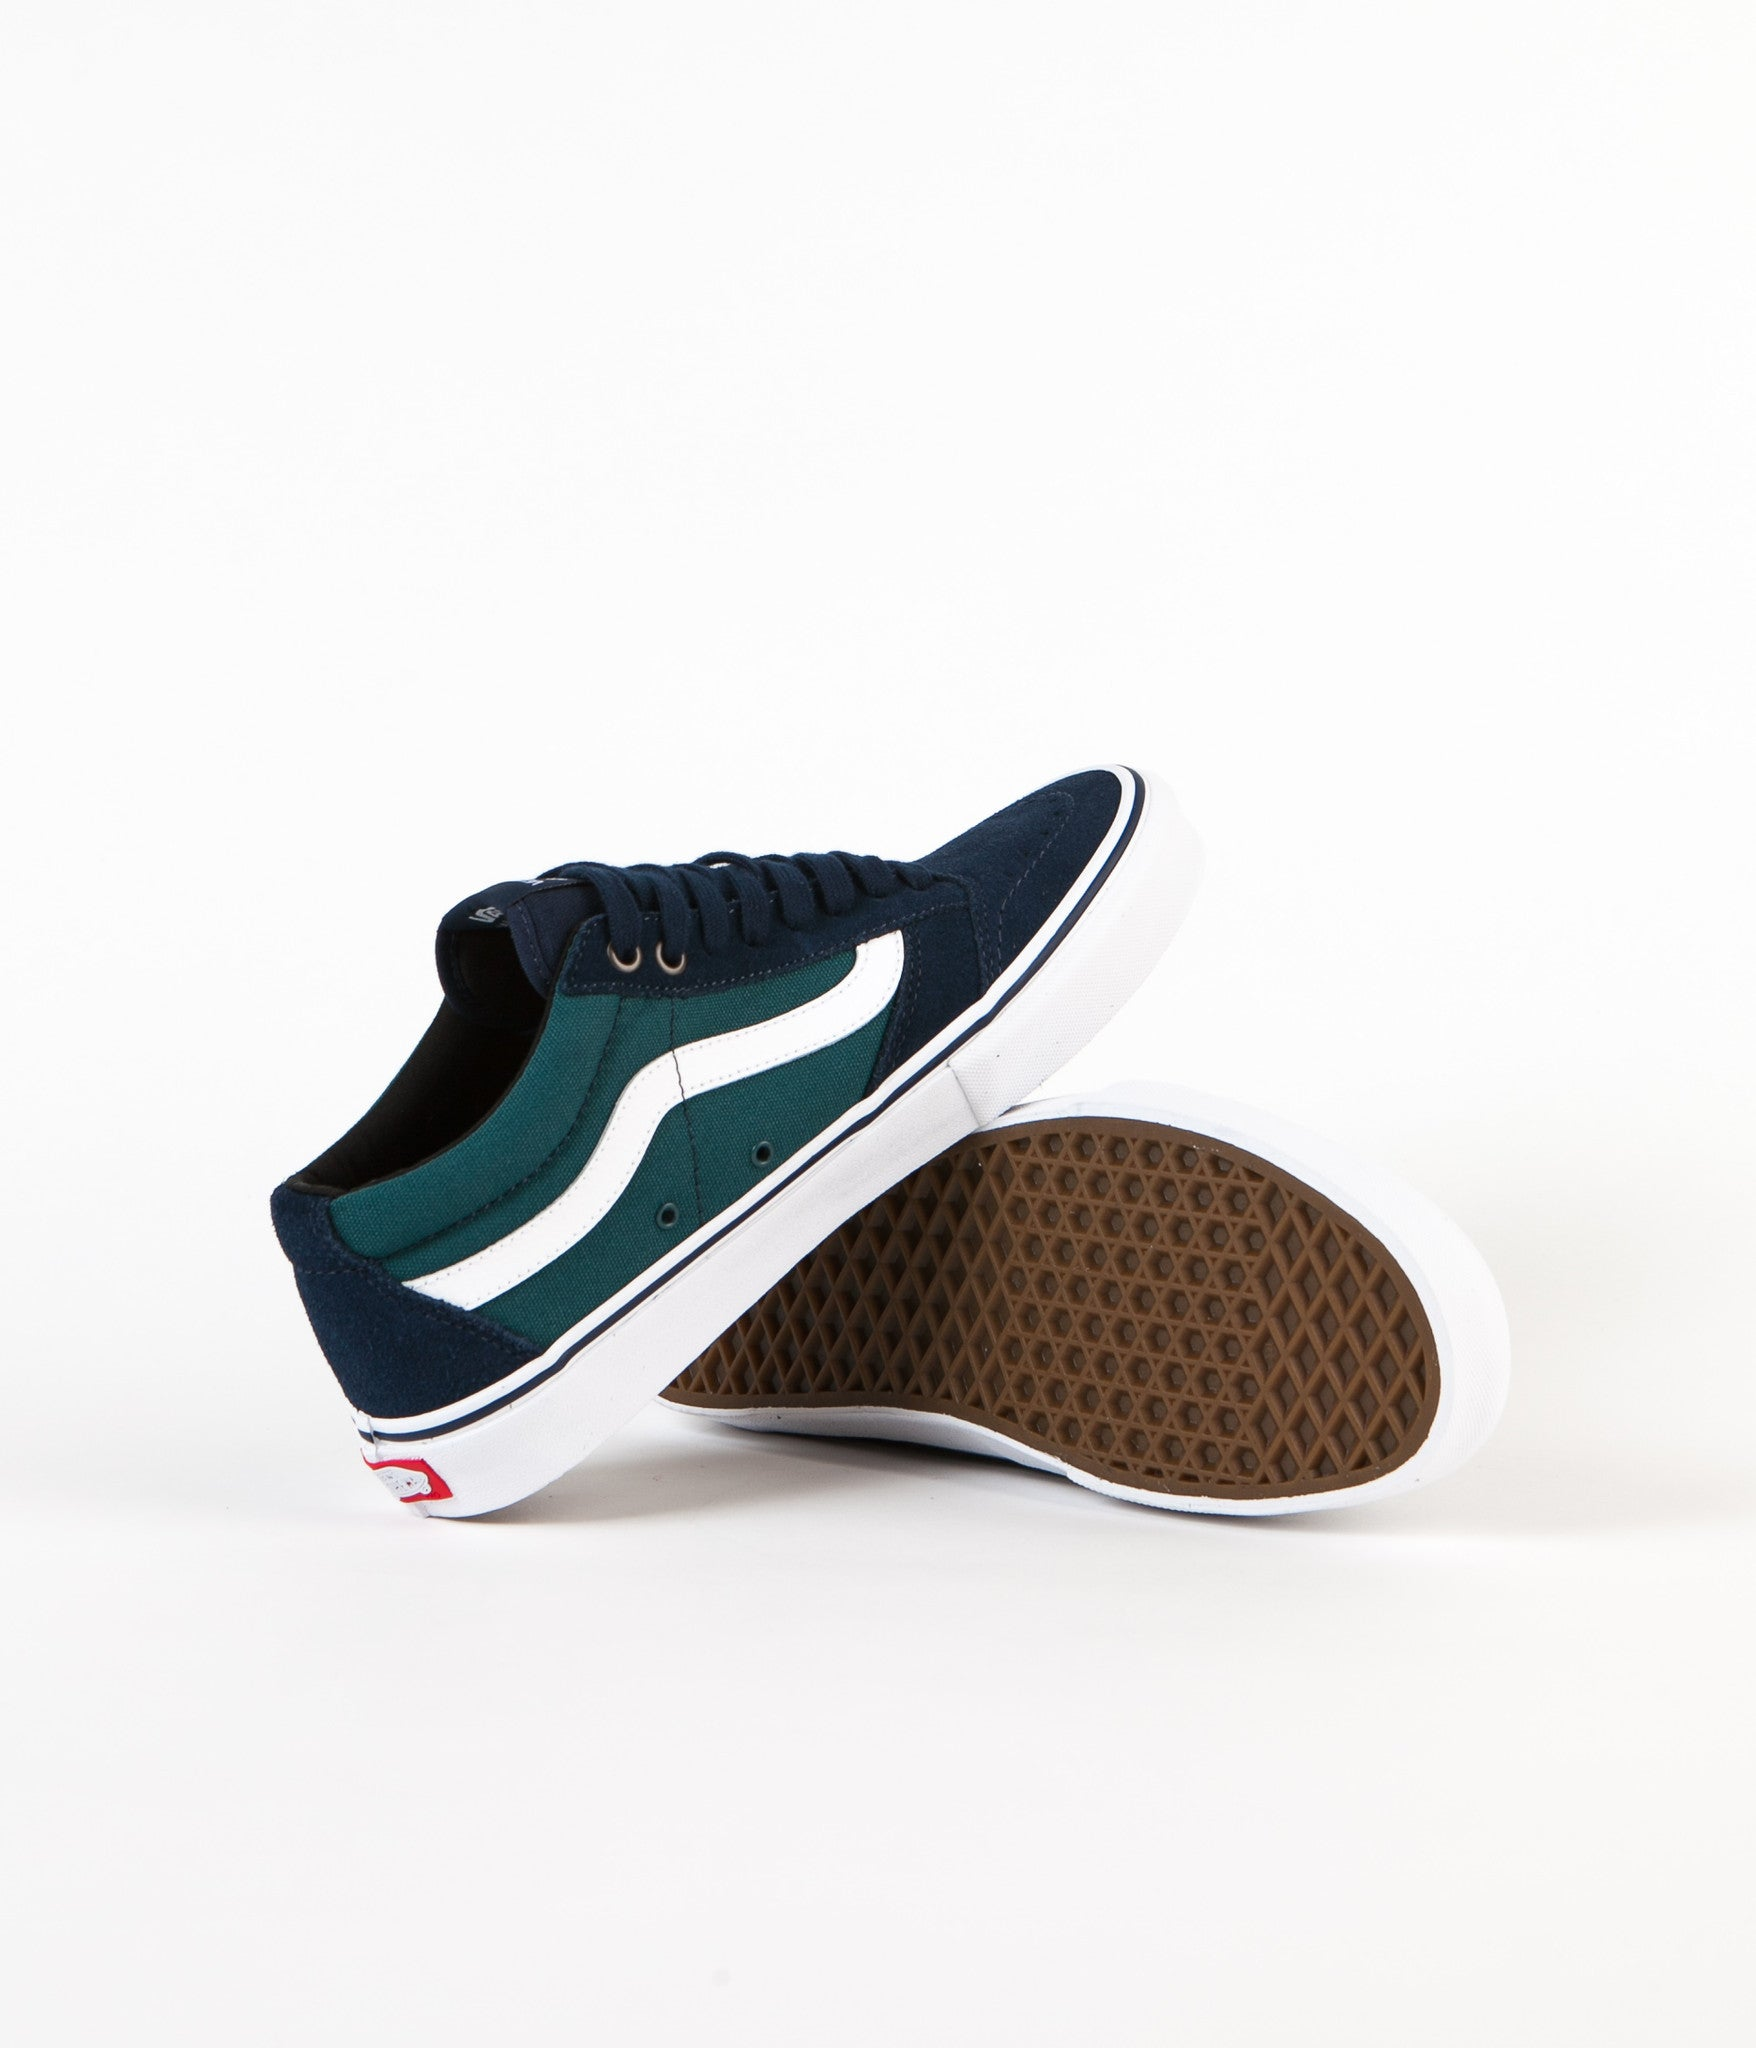 ead530ea5a ... Vans TNT SG Shoes - Dress Blues   Deep Teal ...